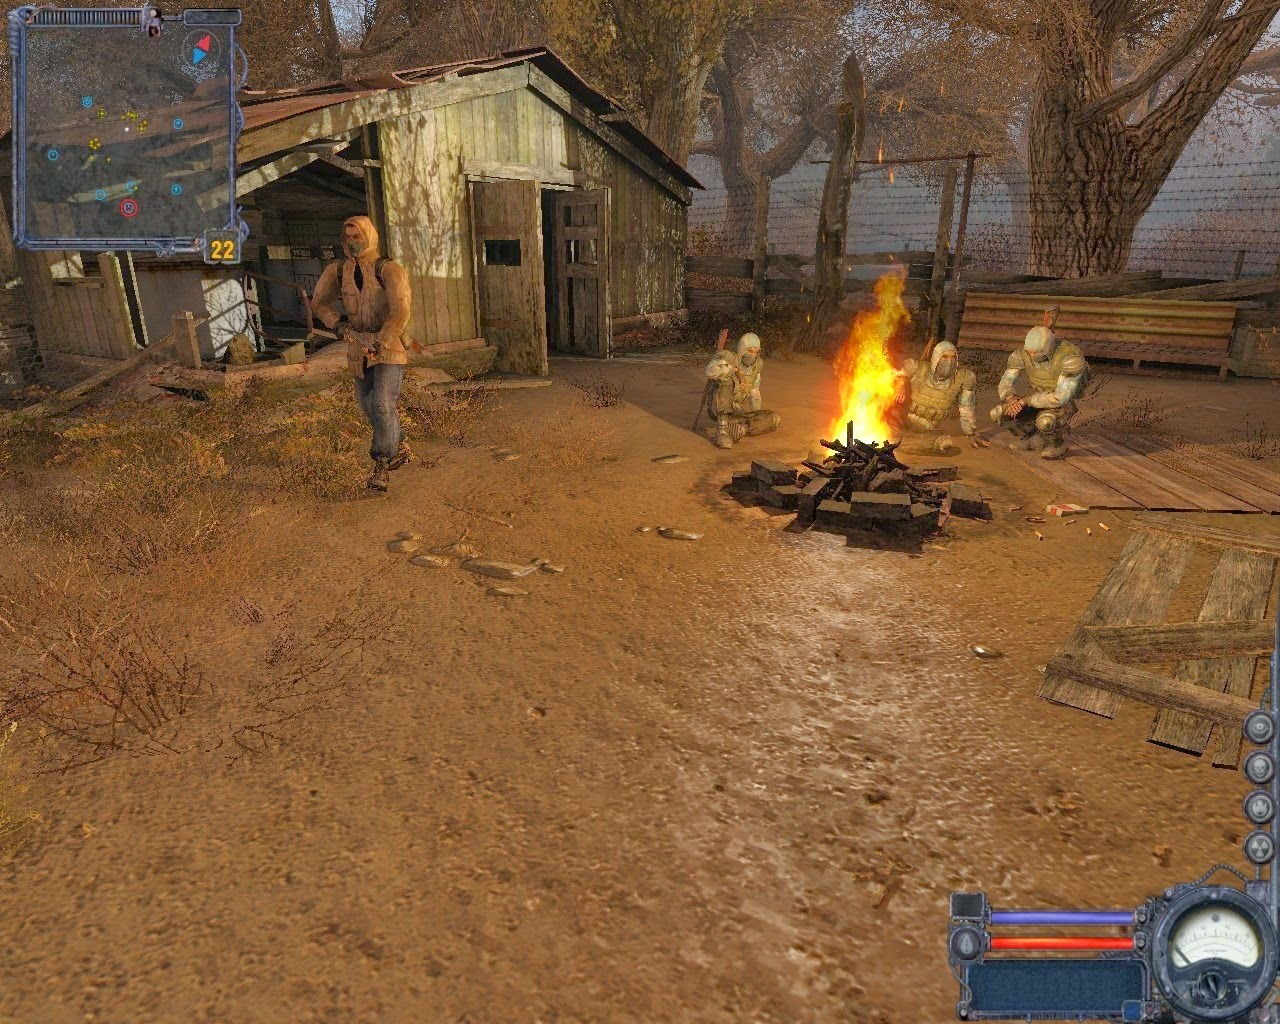 S.T.A.L.K.E.R.: Clear Sky Action Games